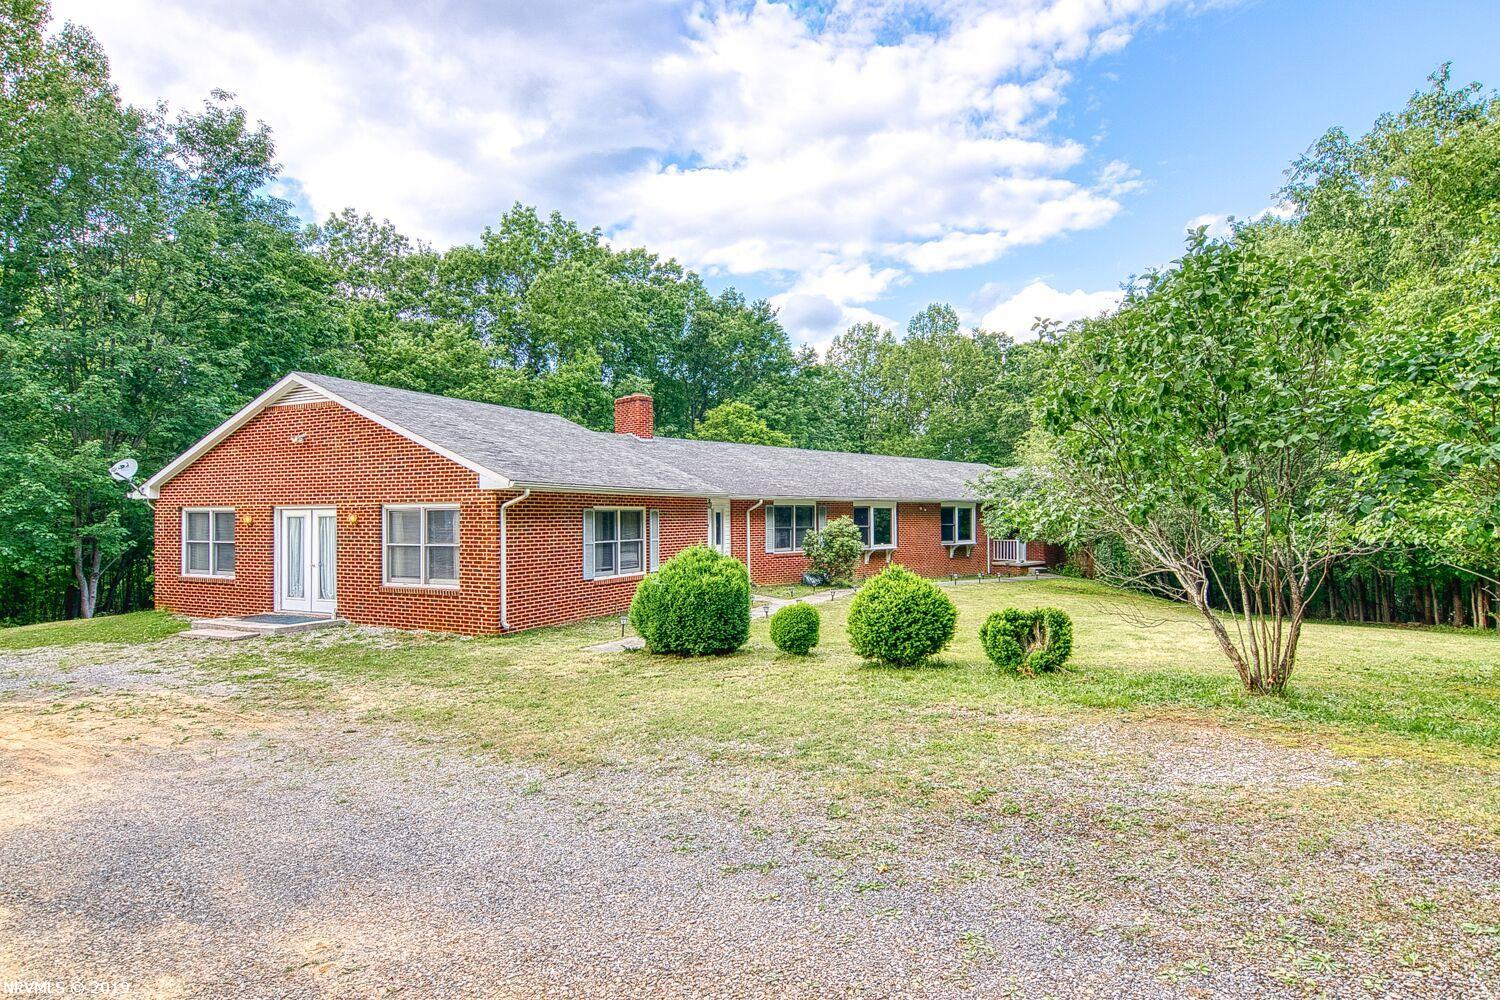 Single Family for Sale at 4090 Morning Glory Drive 4090 Morning Glory Drive Radford, Virginia 24141 United States